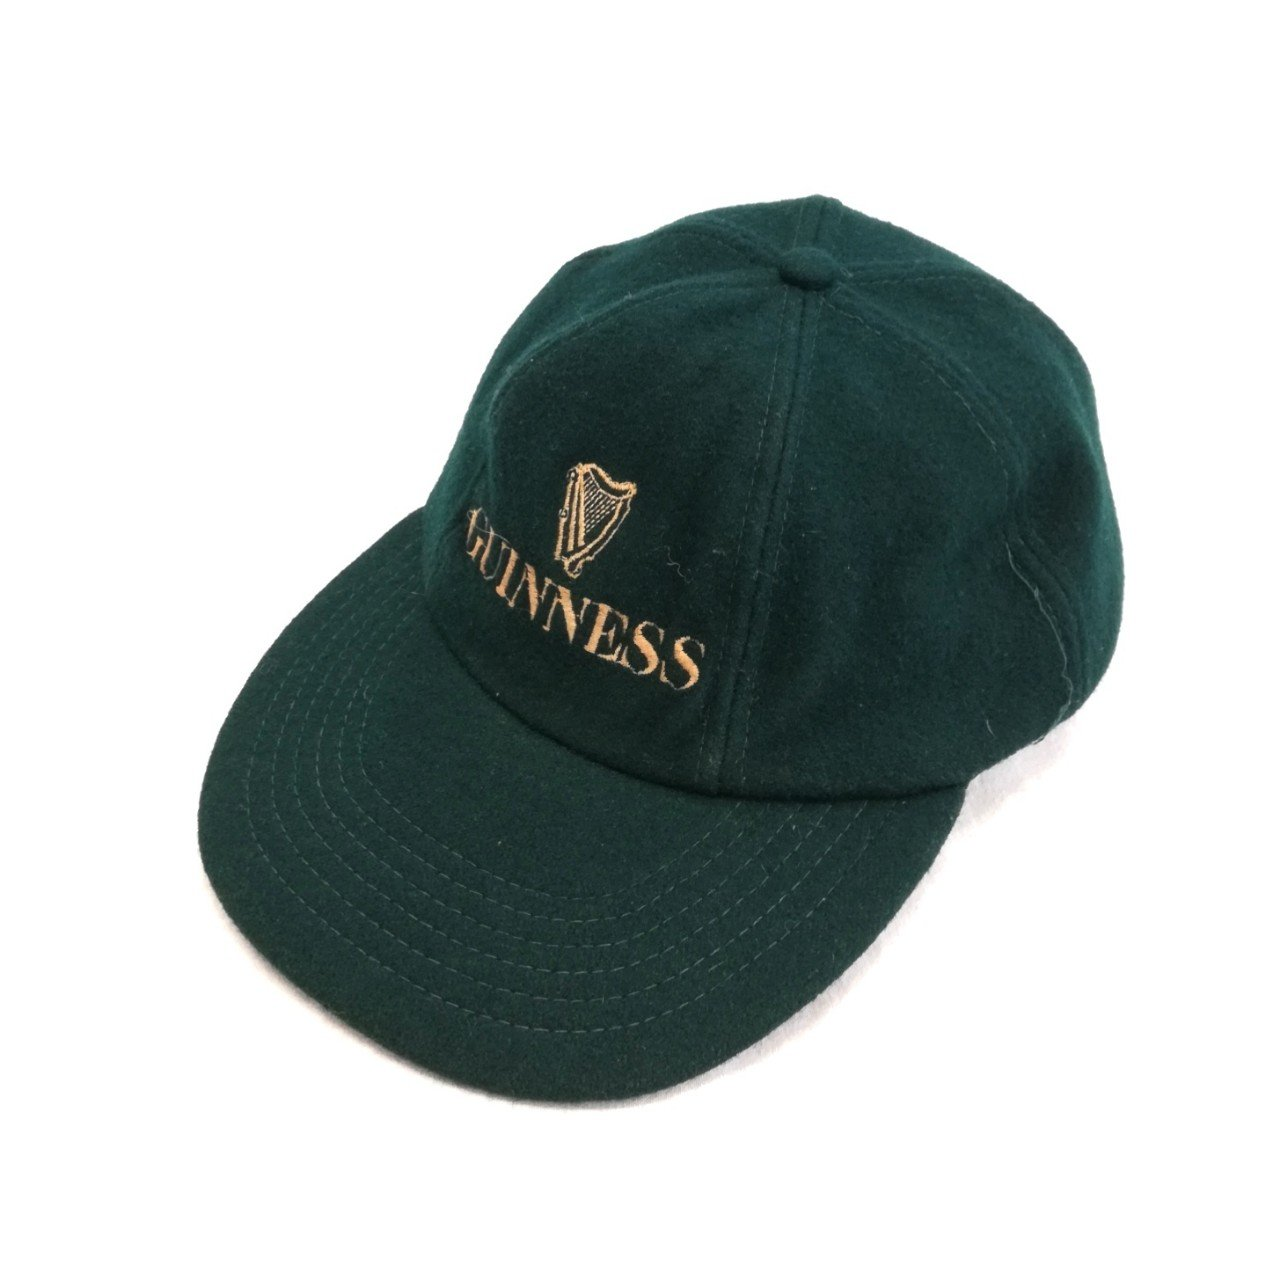 dbedd766a65 Vintage Guinness cap - supreme condition - any questions ask - Depop